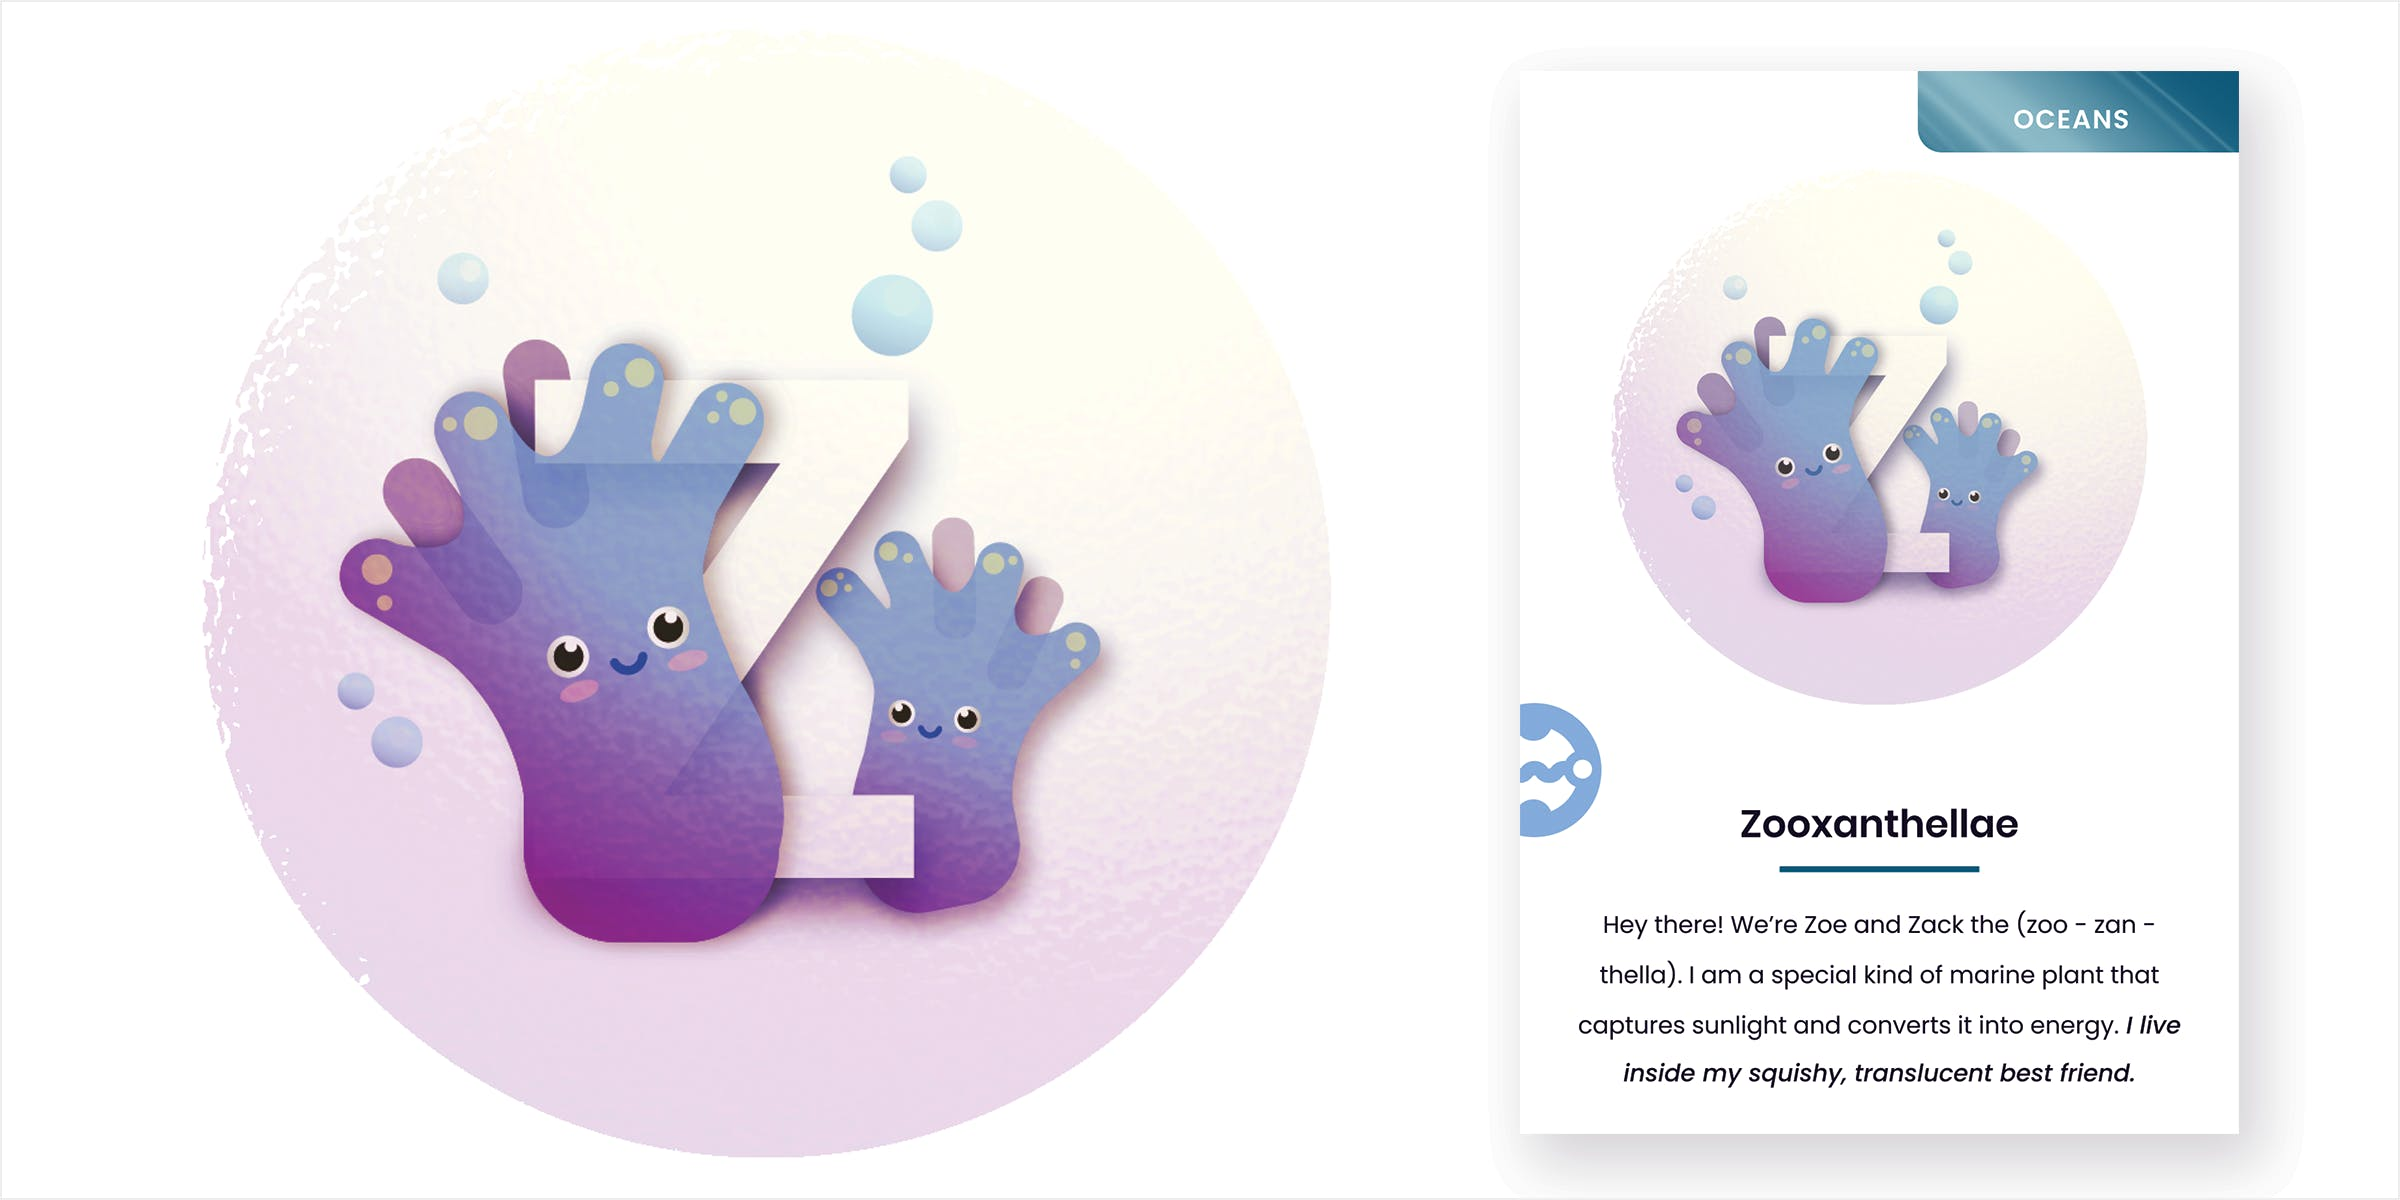 Mockup of letter Z zooxanthellae card. Two zooxanthellae are positioned on either side of the letter Z, entrapped in a giant floating bubble.